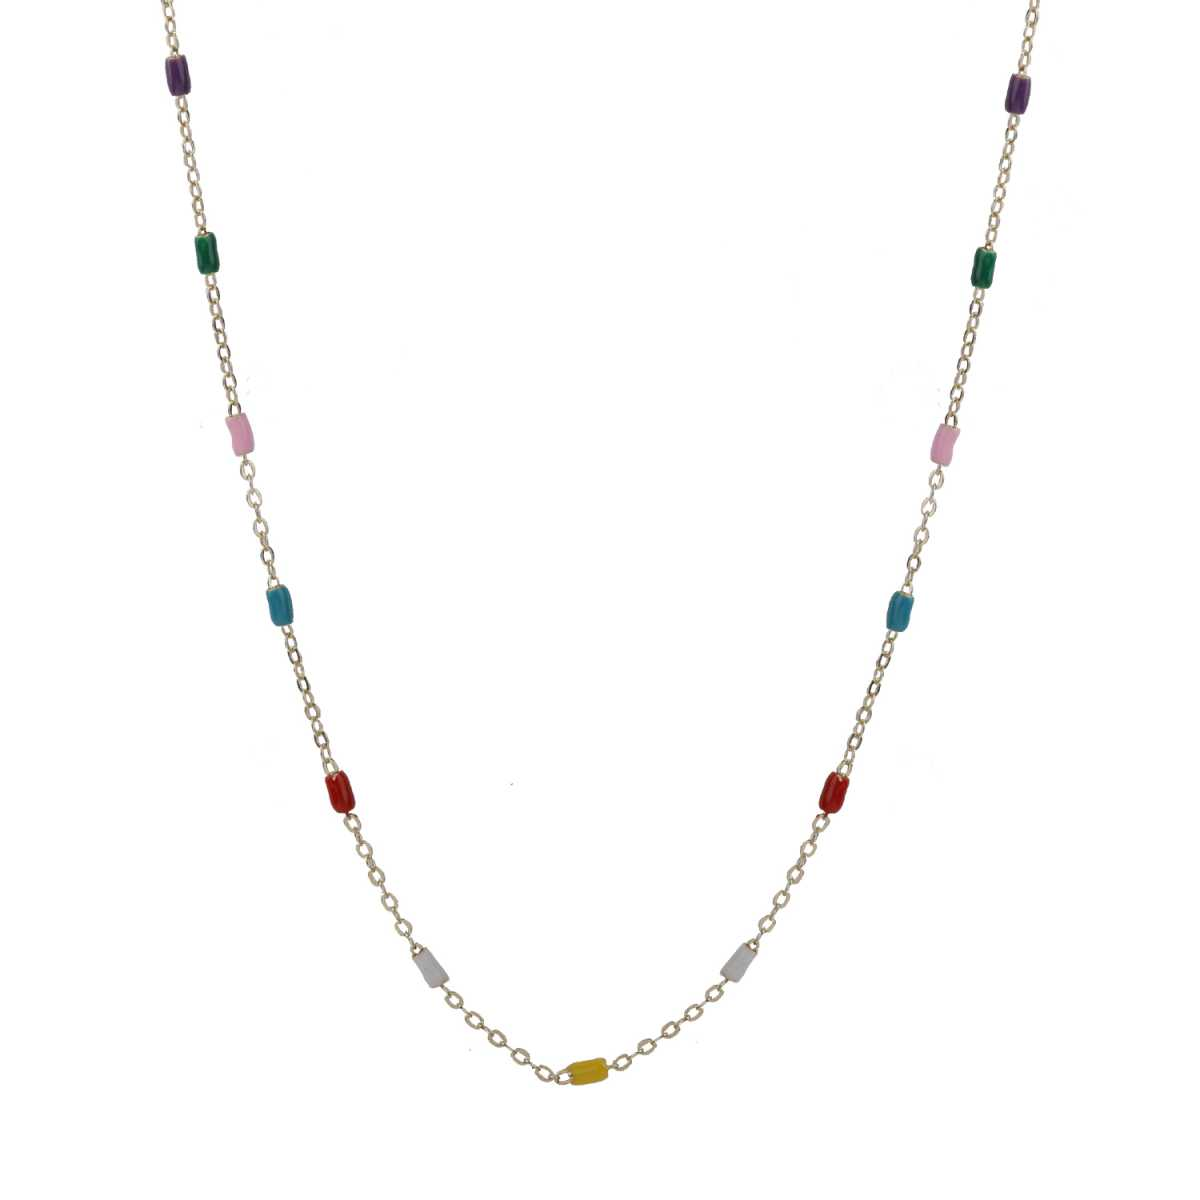 Stunning Gold 18 Inch Chain With Multi-Color Beads For Girls And Women Jewellery